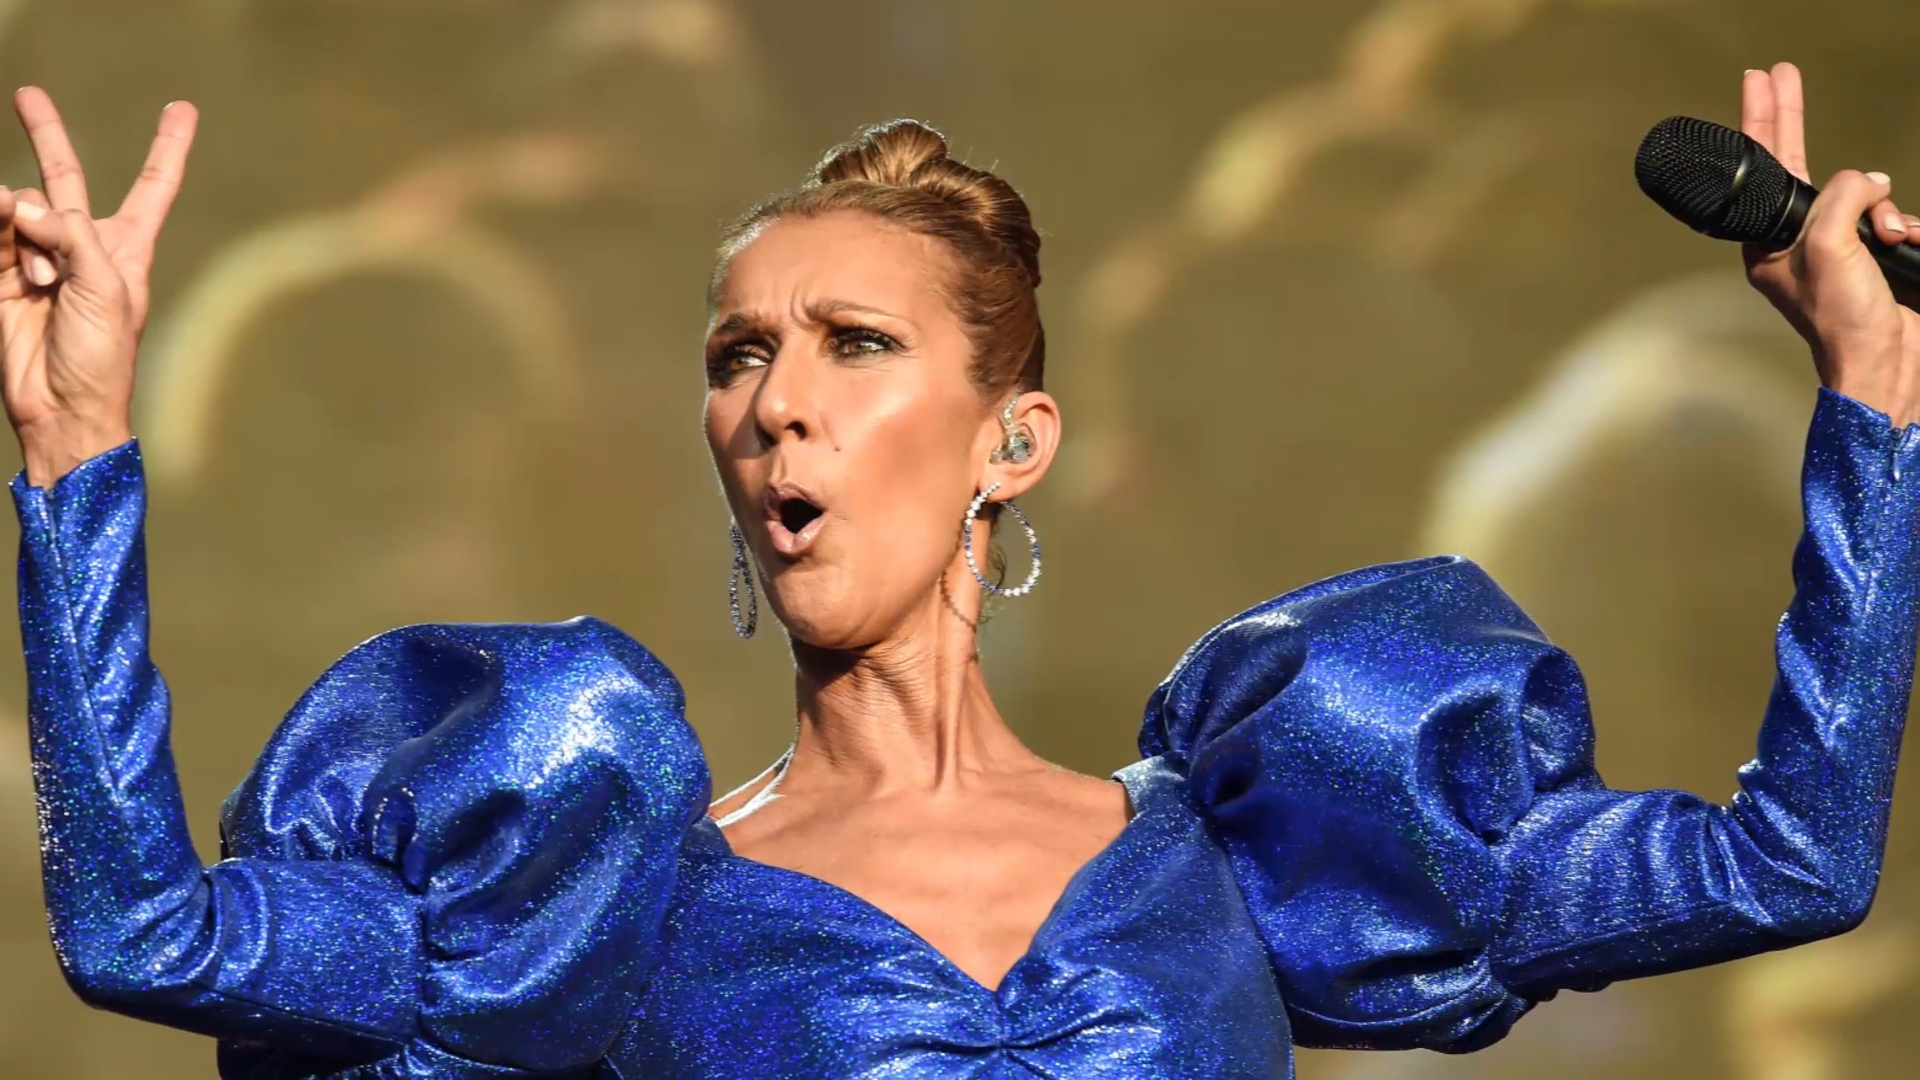 Céline Dion Just Wants To Be Hugged: 'I Miss What A Husband Would Do'